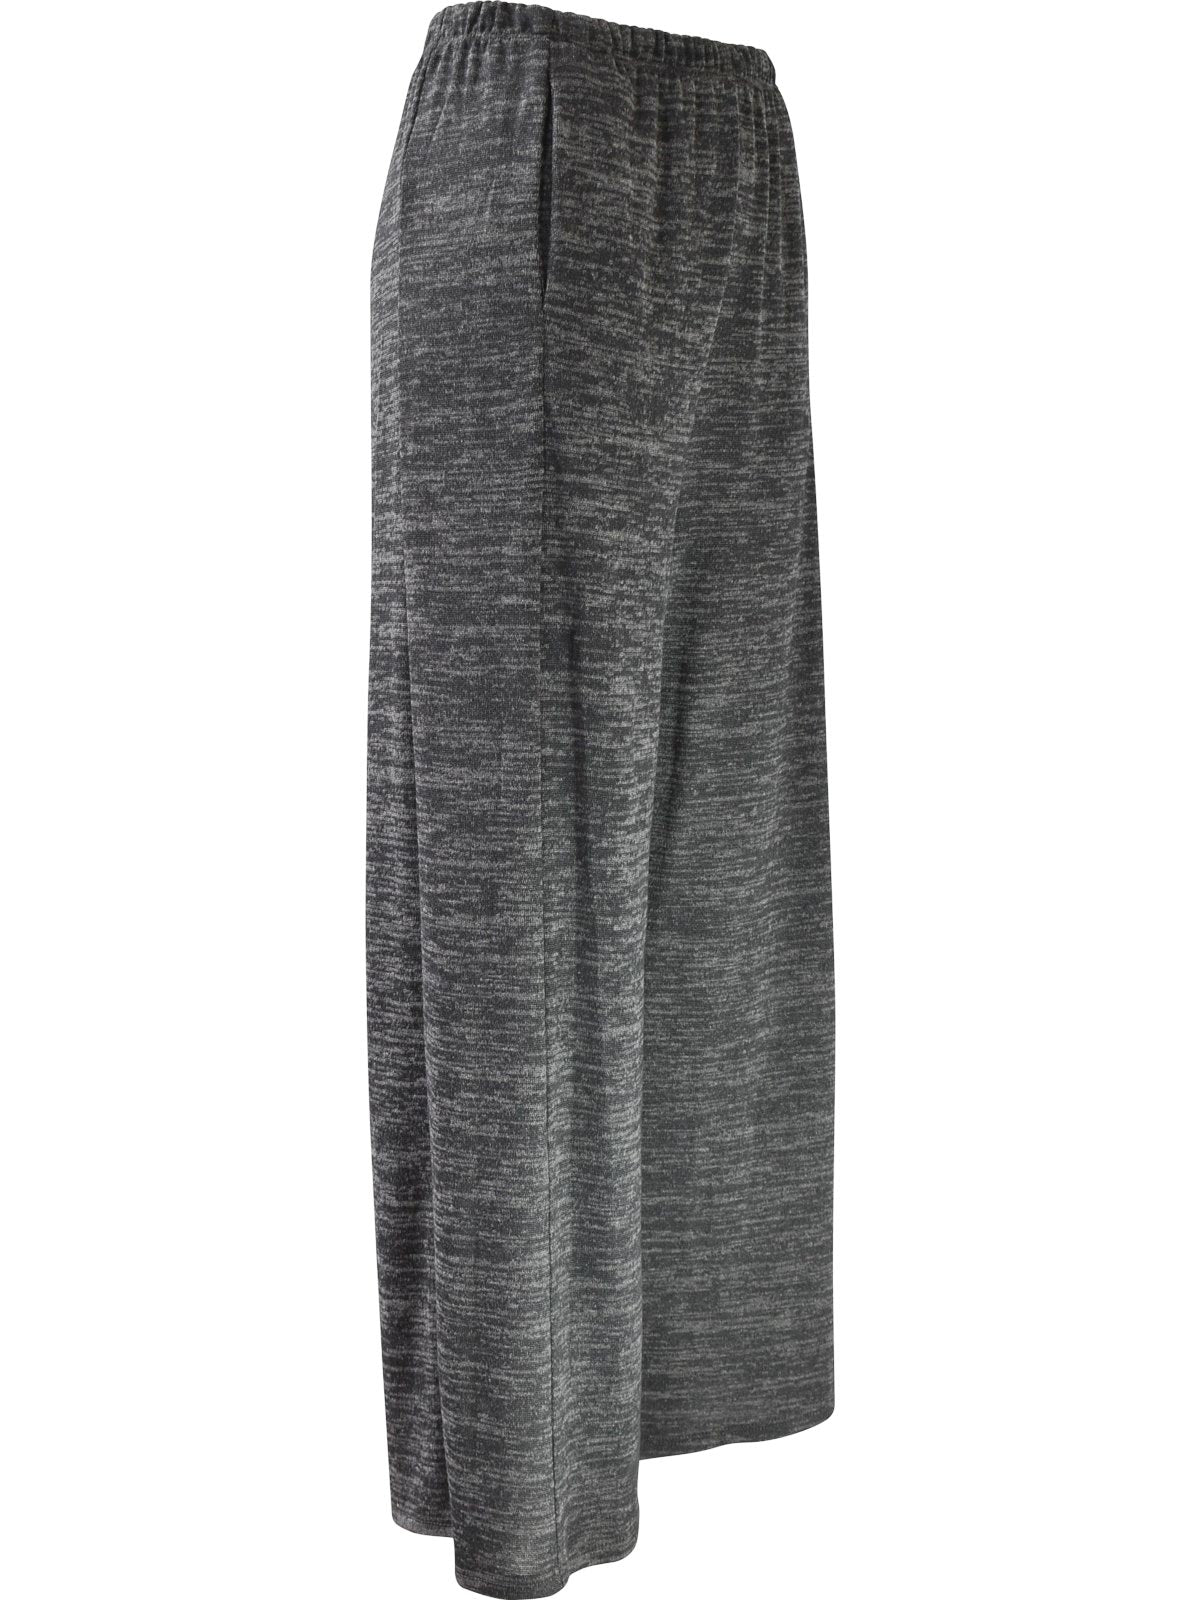 Khangura Straight Palazzo Pants, Charcoal - Statement Boutique